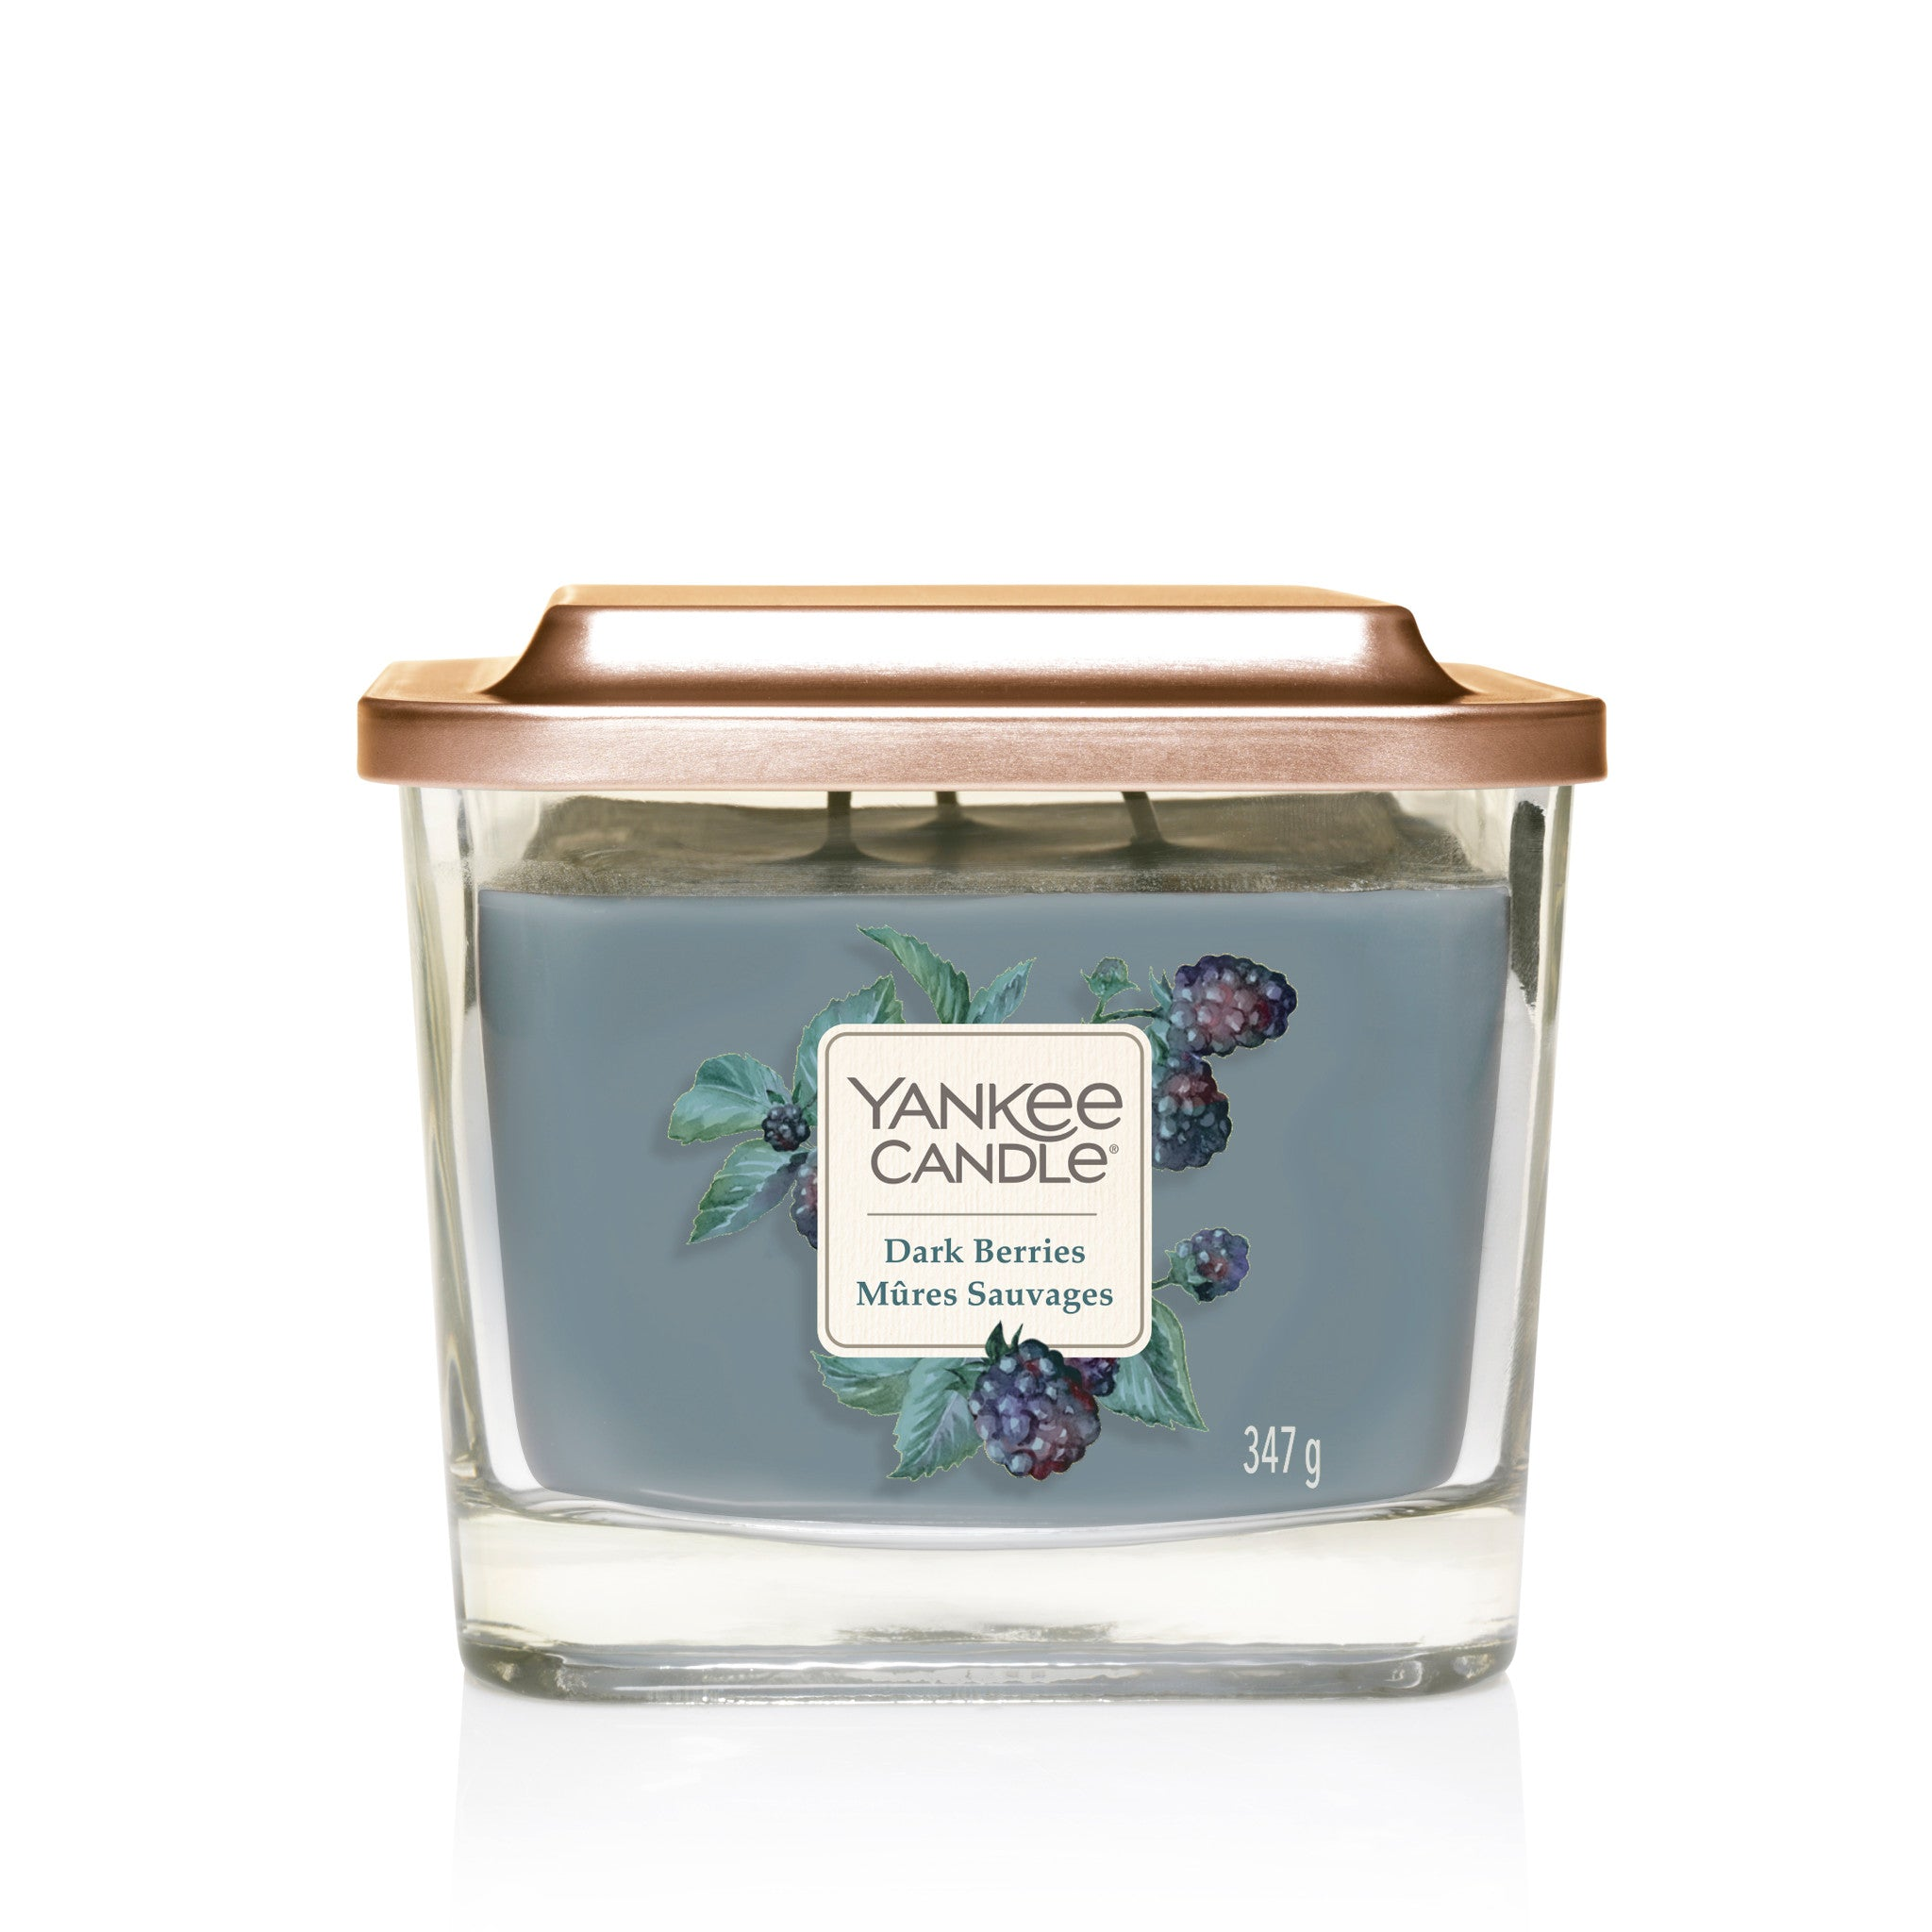 DARK BERRIES -Yankee Candle- Candela Media